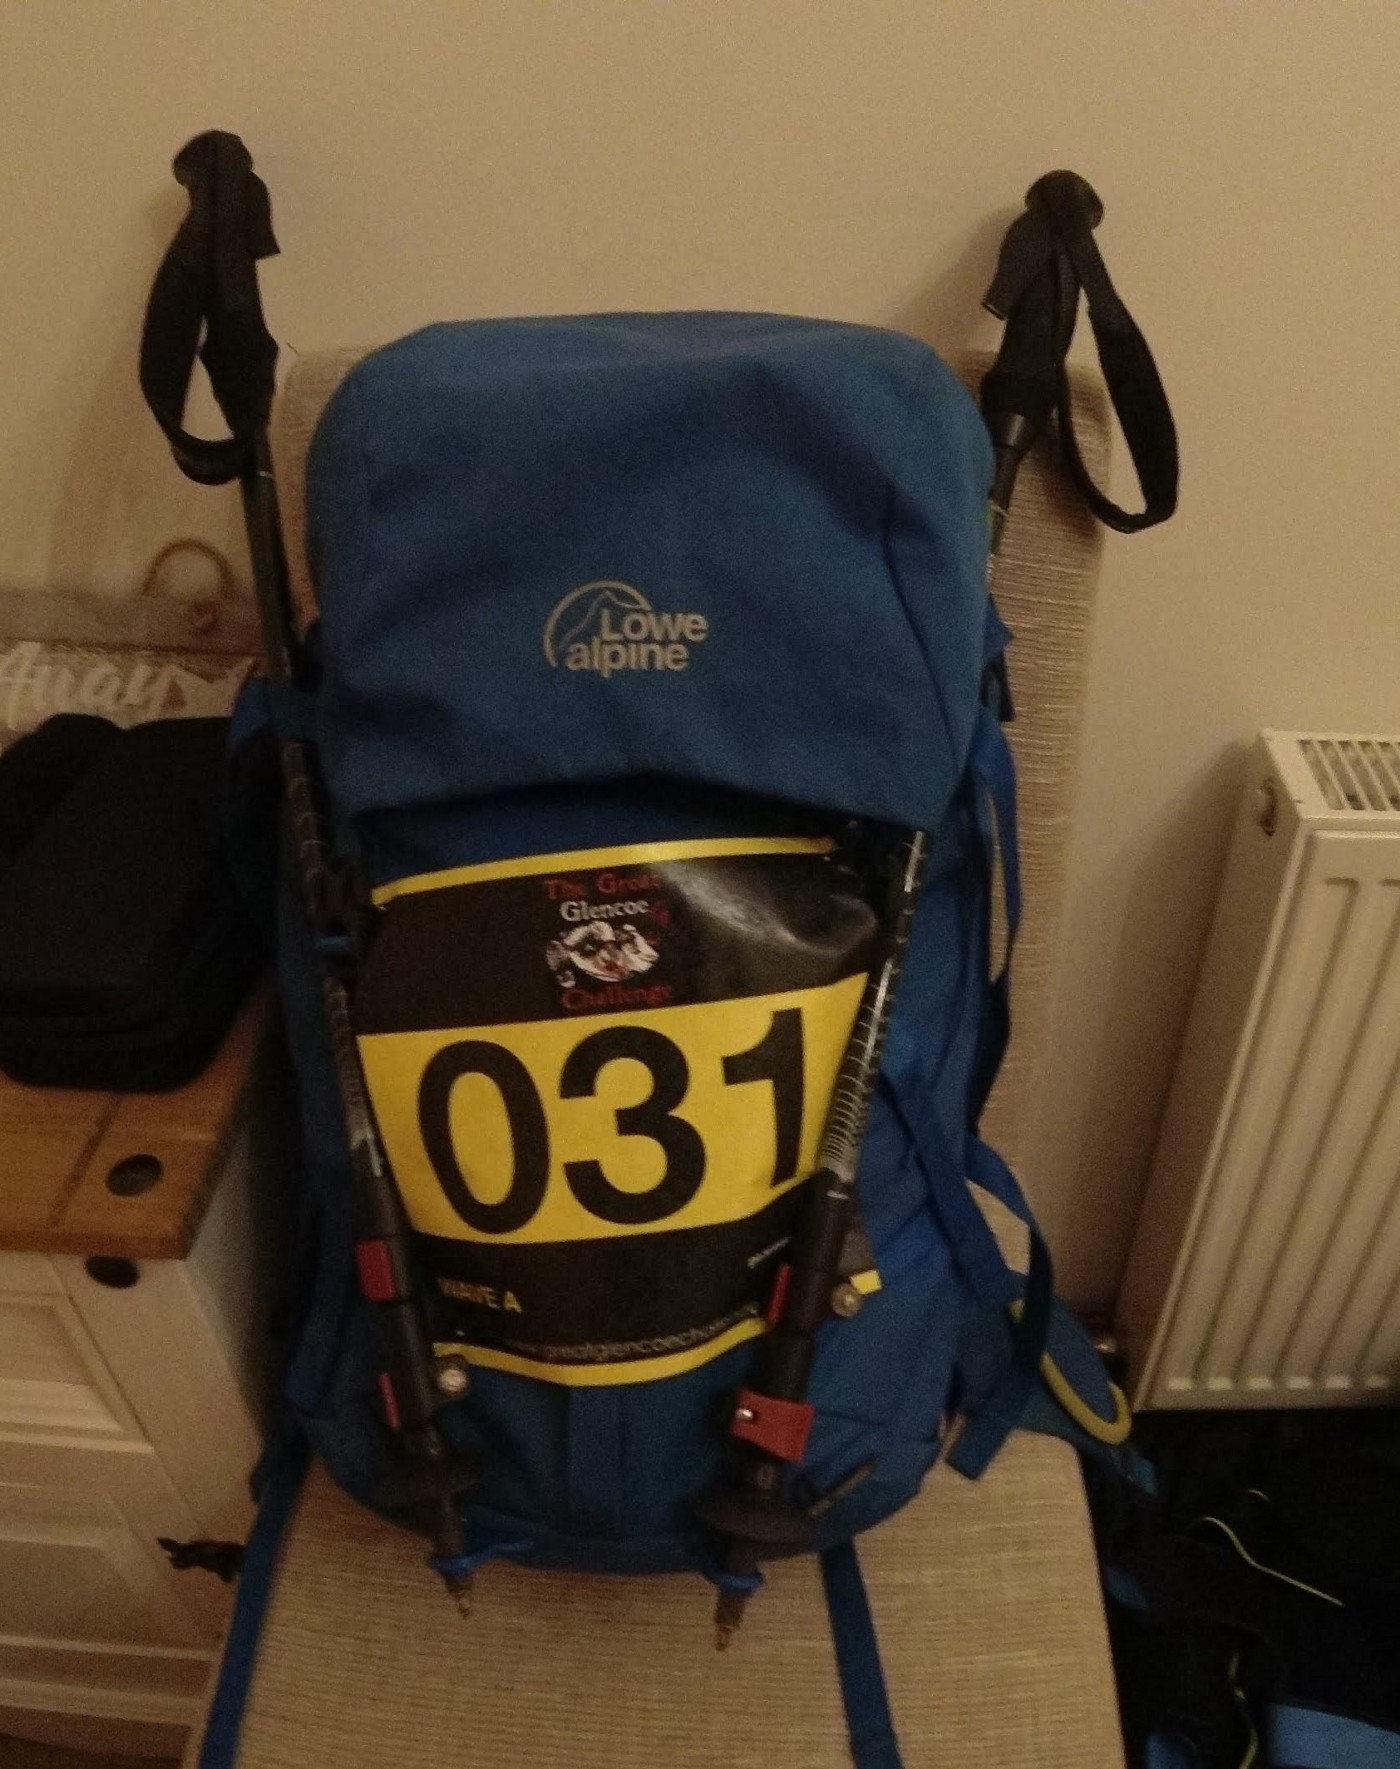 Backpack with walking poles and a Running Number.